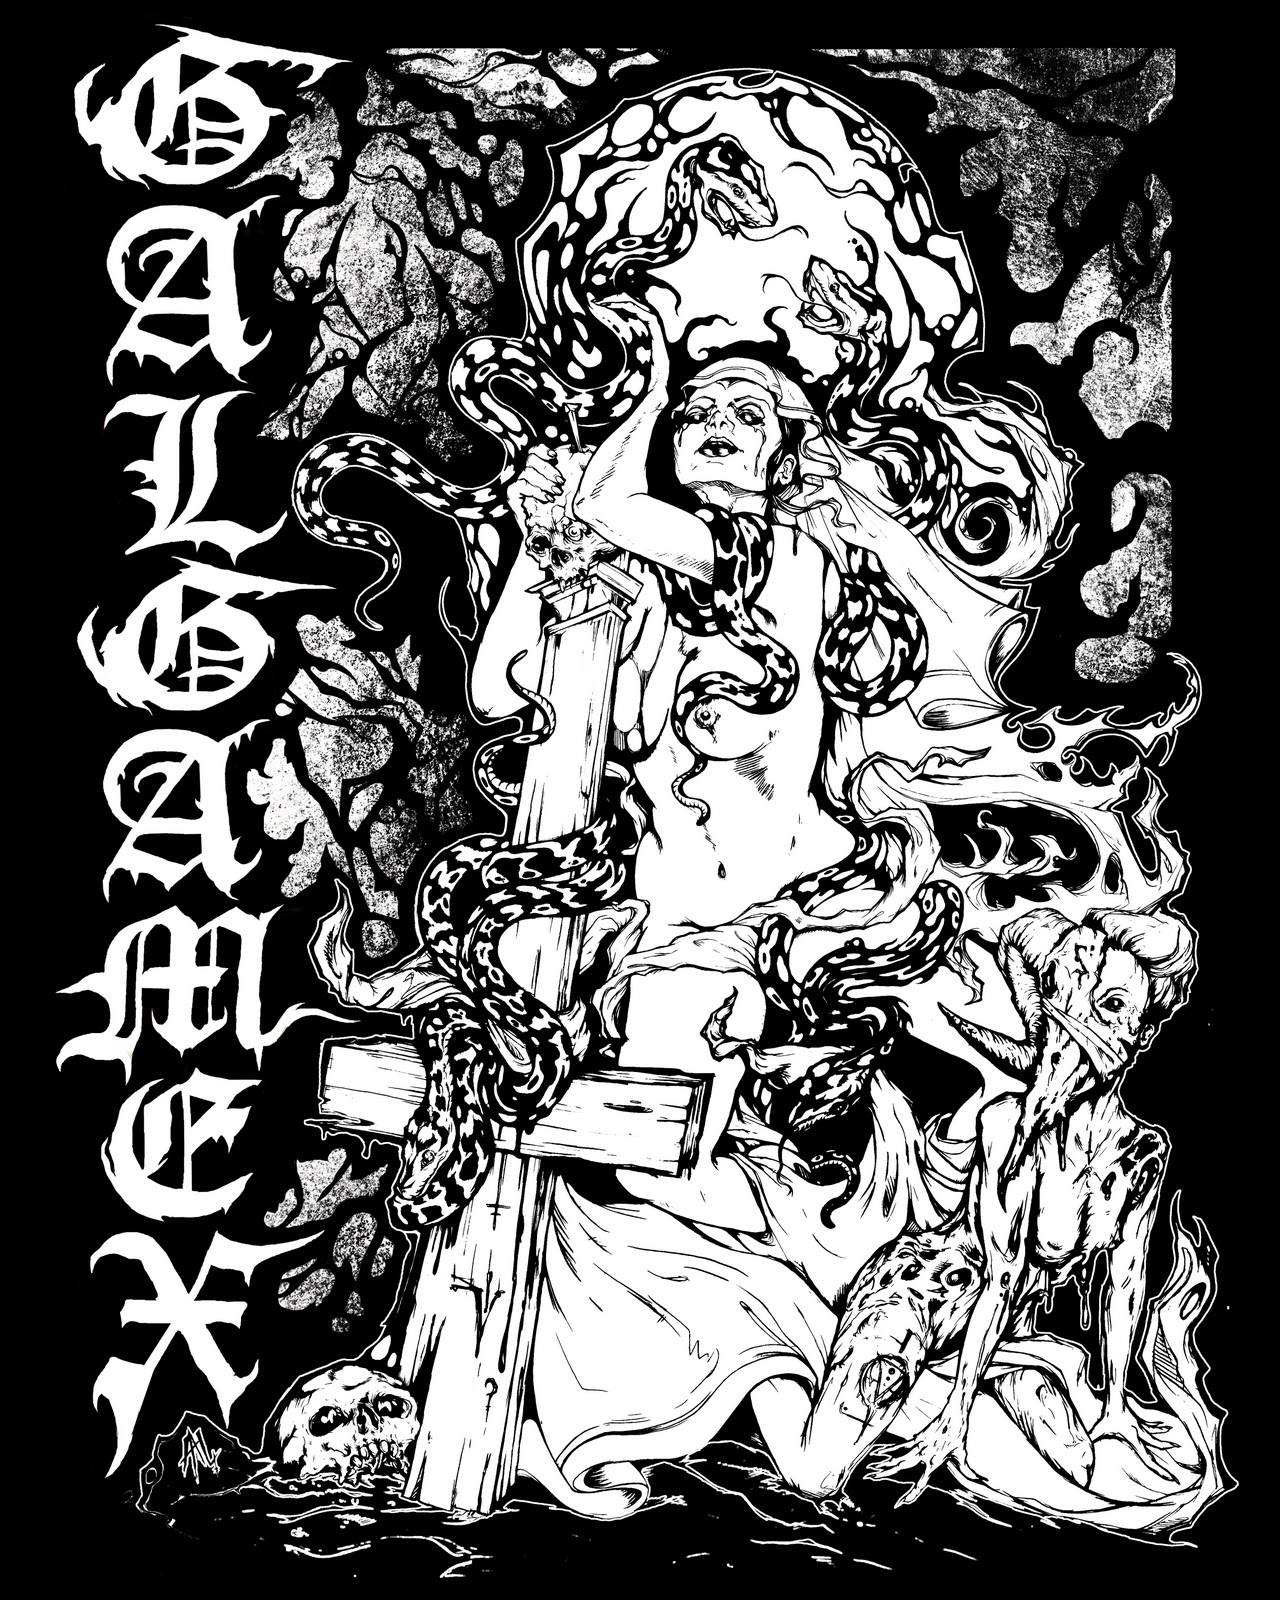 Shirt design vancouver - New T Shirt Design I Just Completed For Vancouver Death Metal Band Galgamex